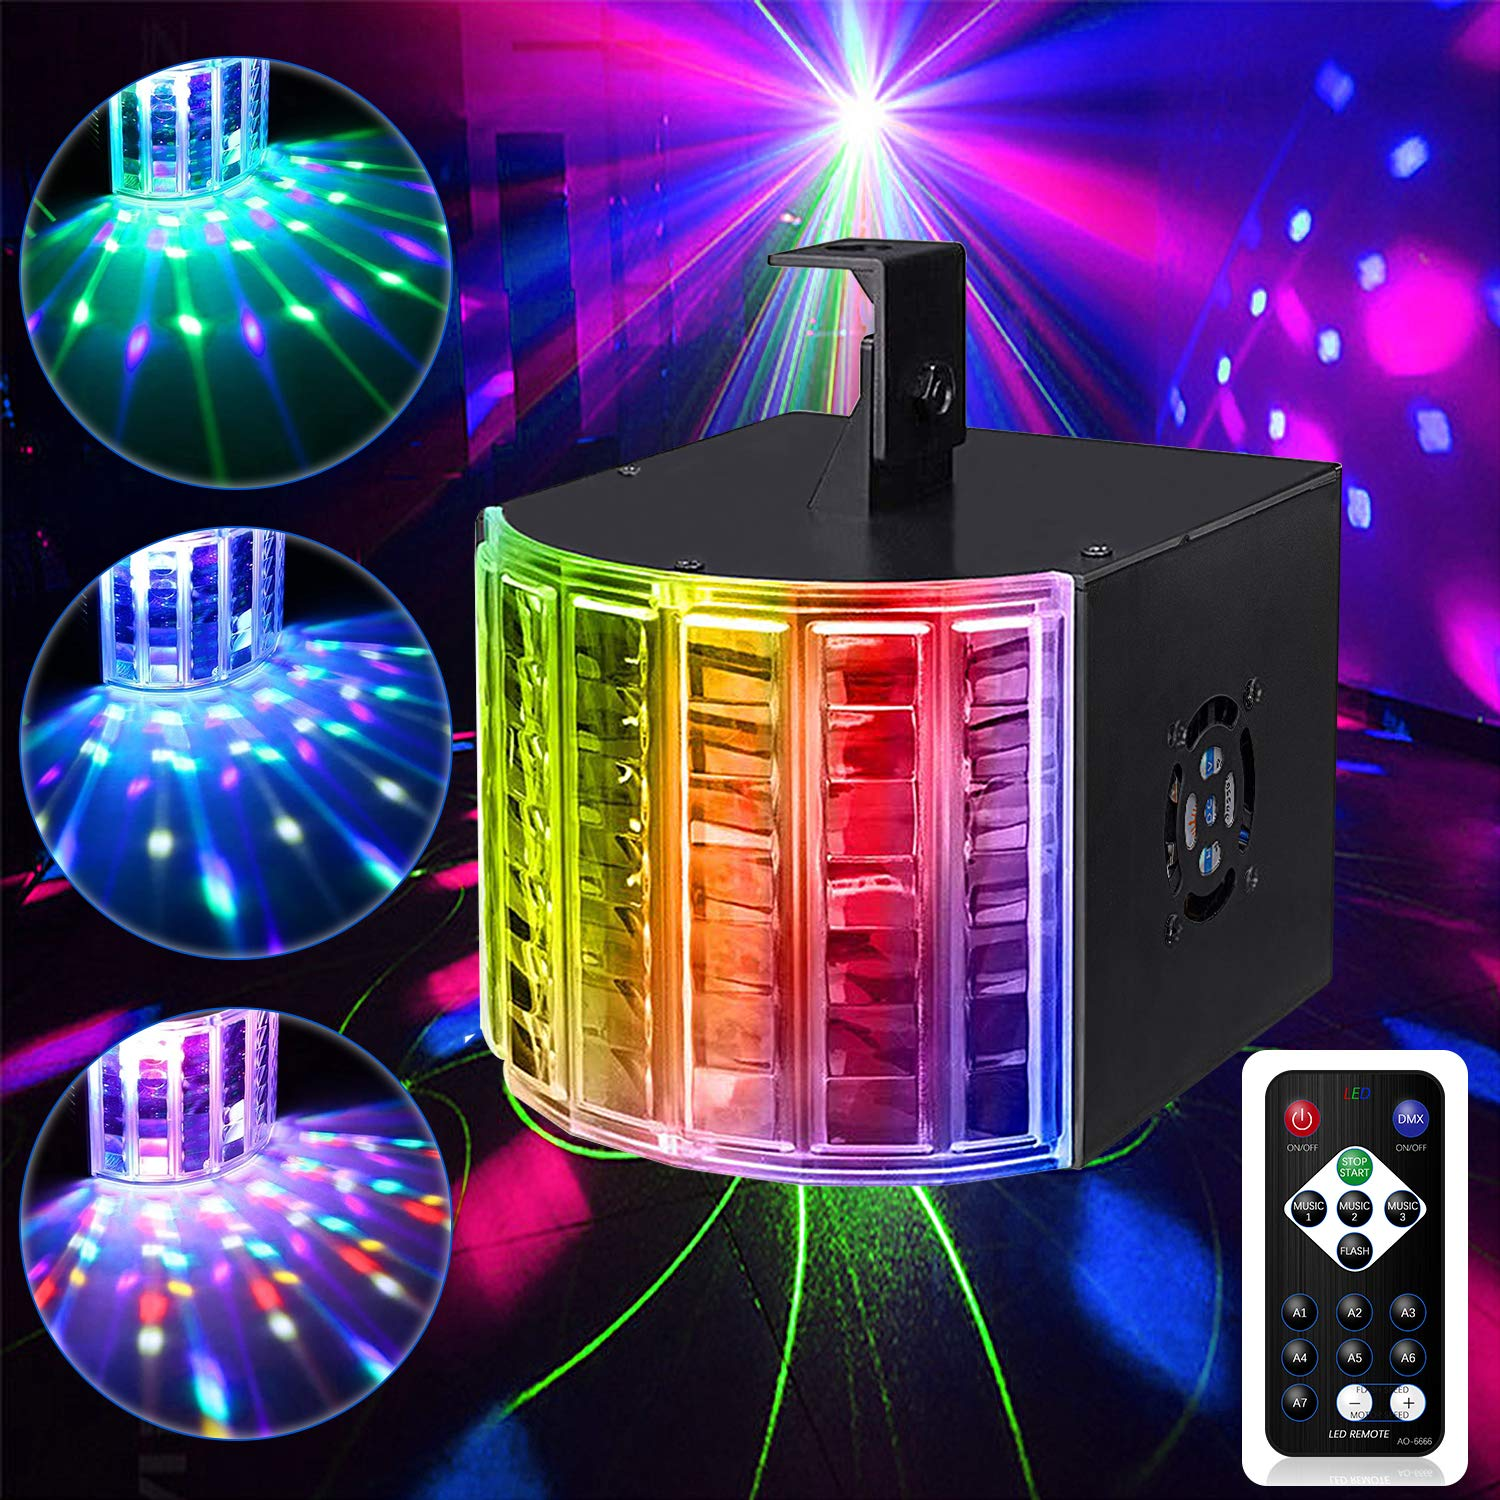 DJ Disco Lights,Ezire LED Party Lights DMX512 Sound Activated Strobe Light Stage Lights with Remote Control for Dance Parties Bar Karaoke Xmas Wedding Show Club by Ezire